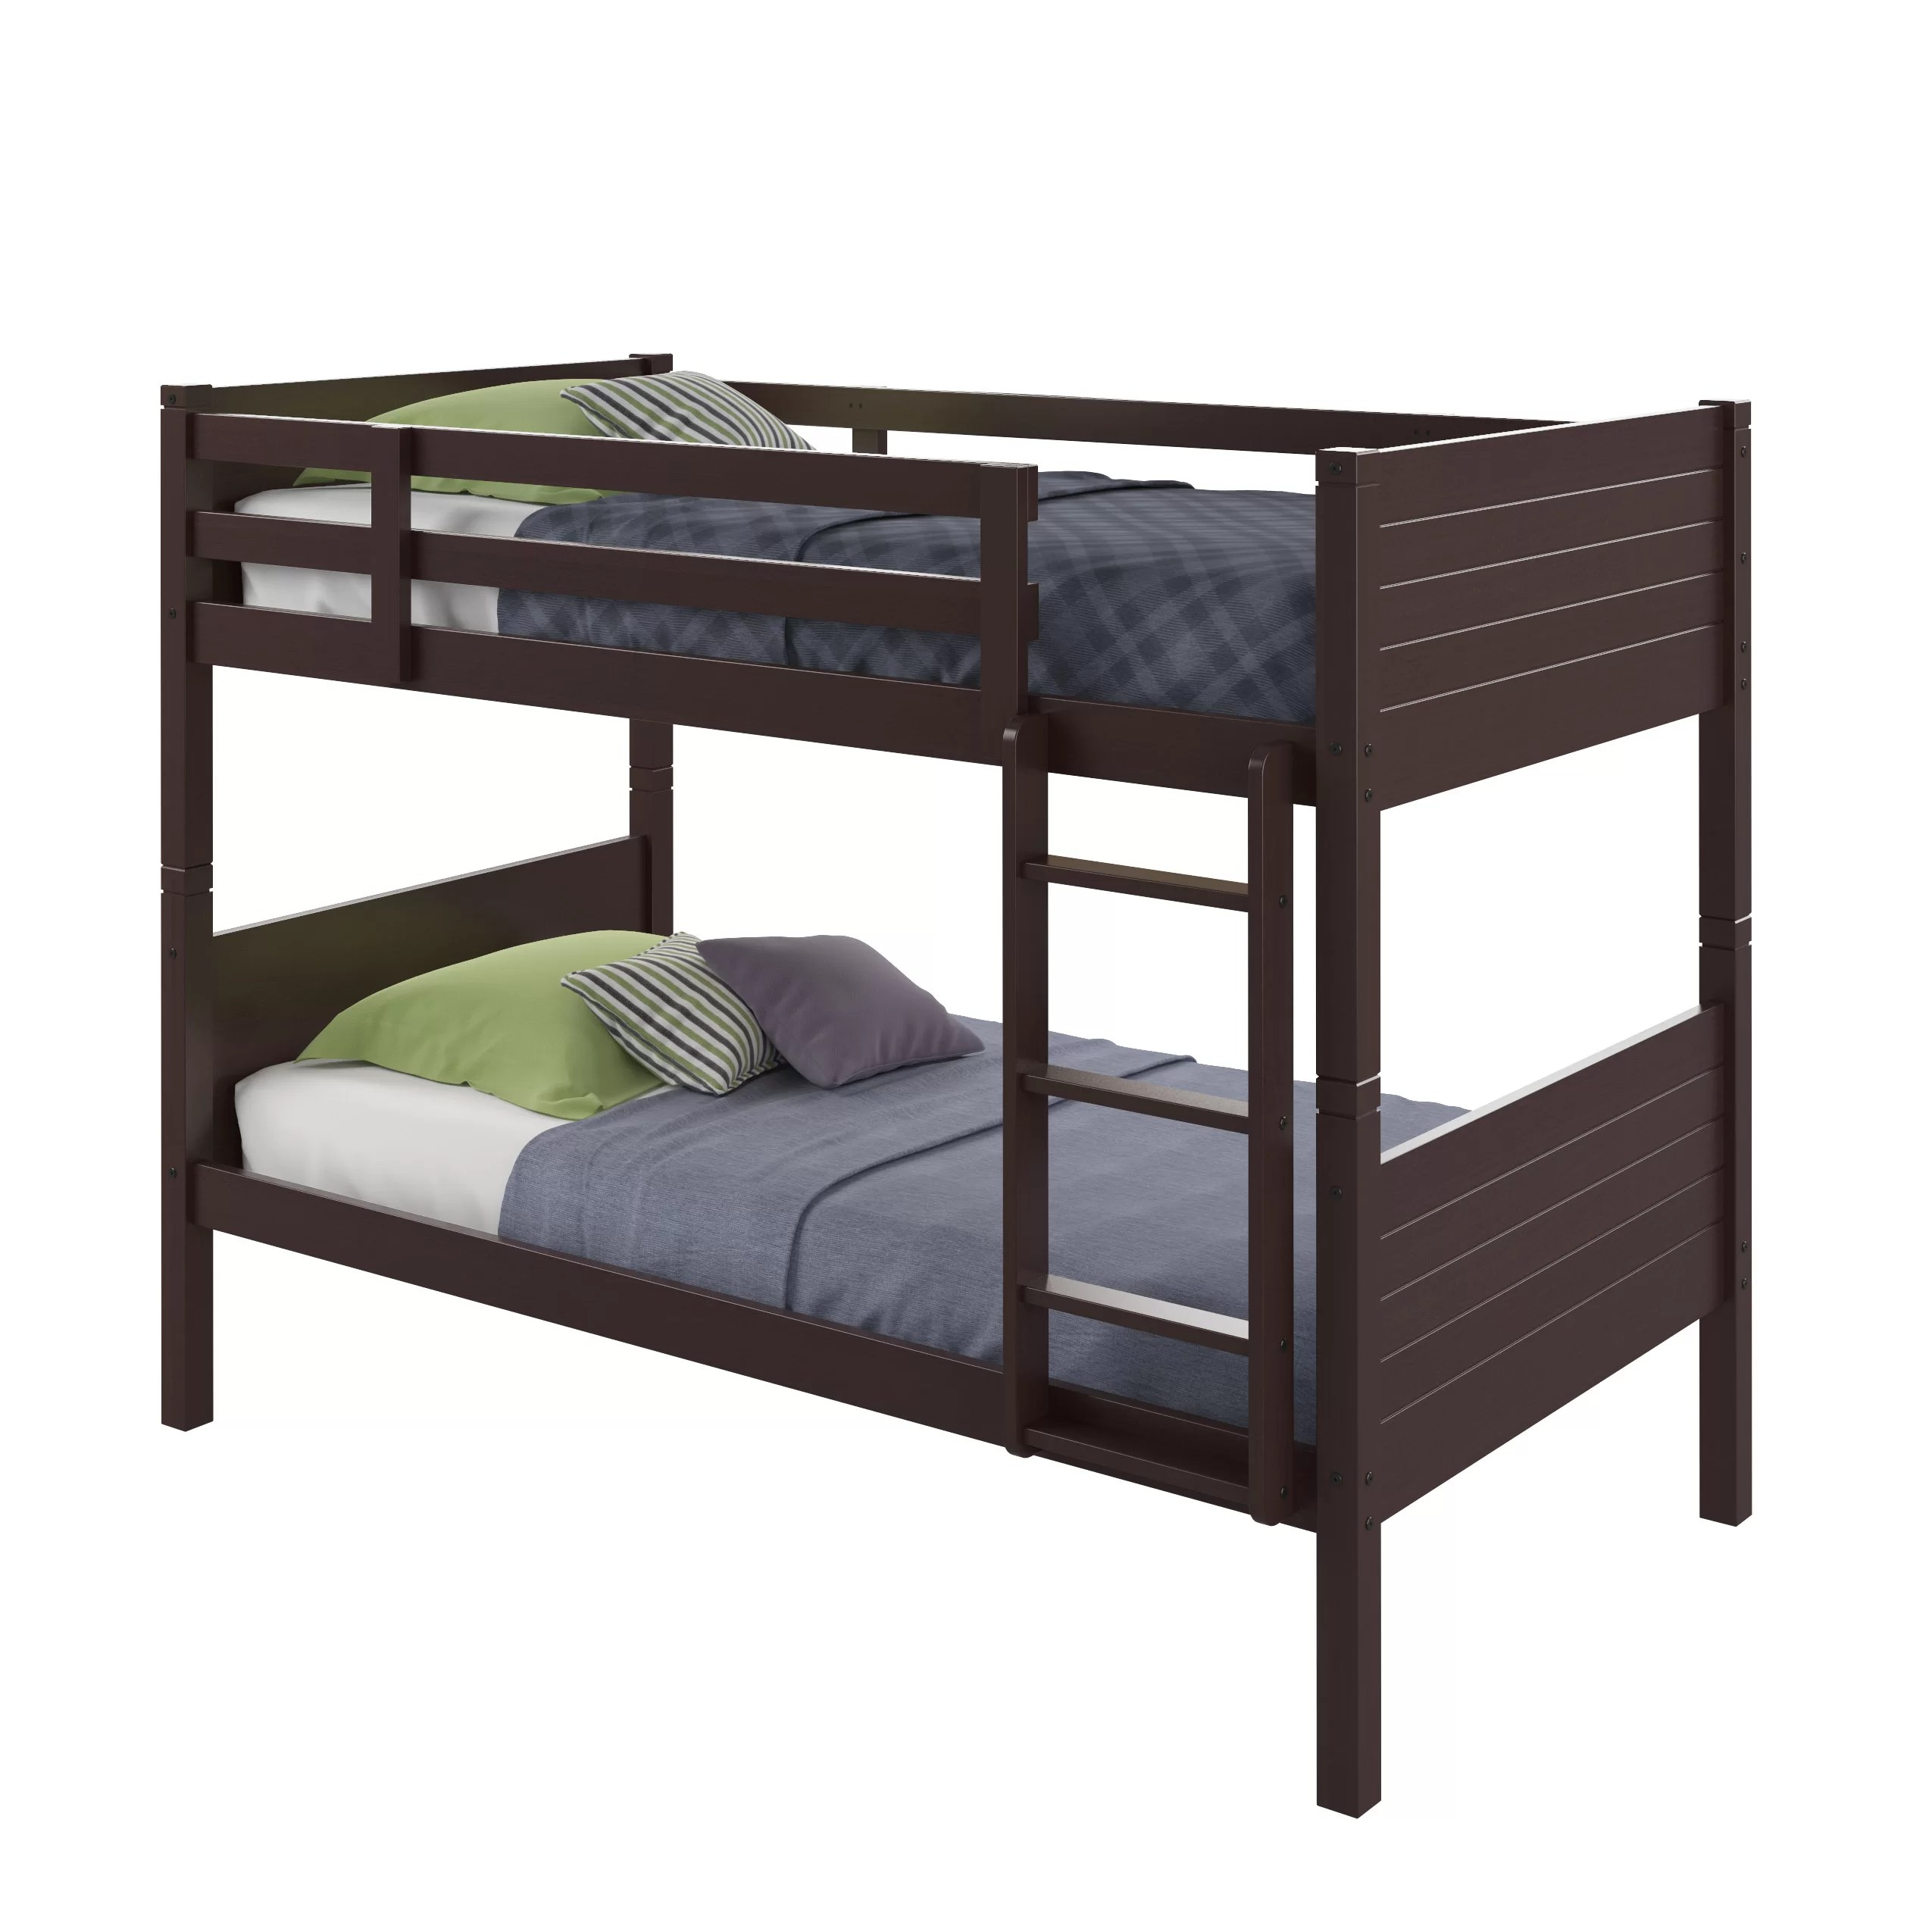 3 Twin Beds In The Space Of 1 Three Posts Tyre Twin Bunk Bed And Reviews Wayfair